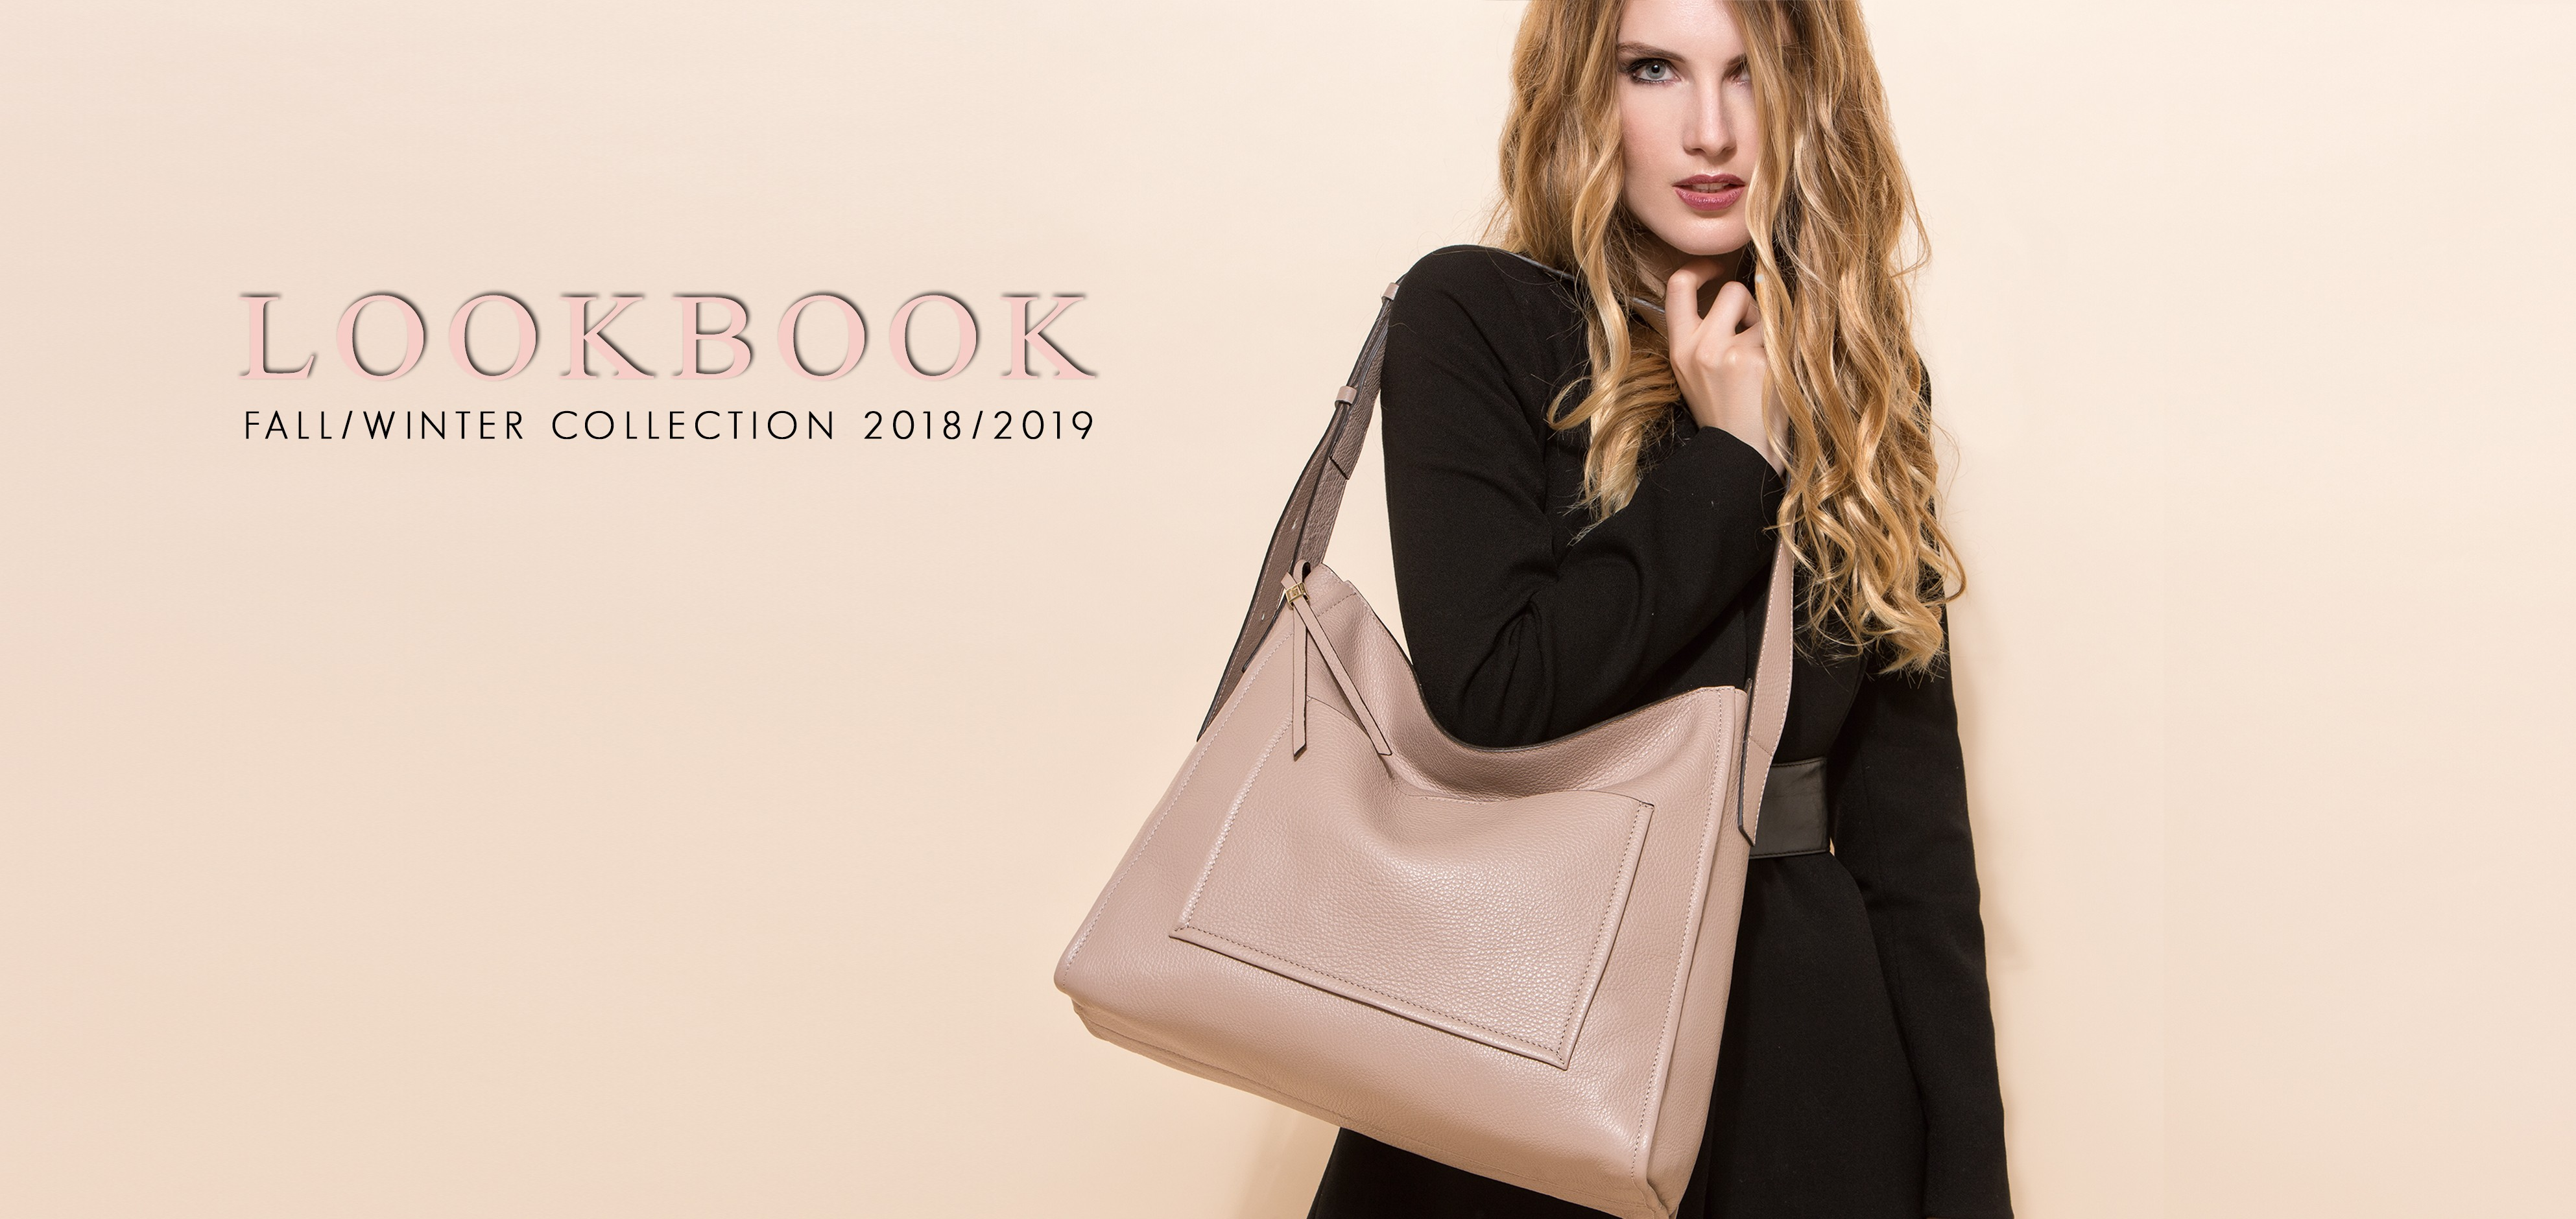 Elenoire - lookbook